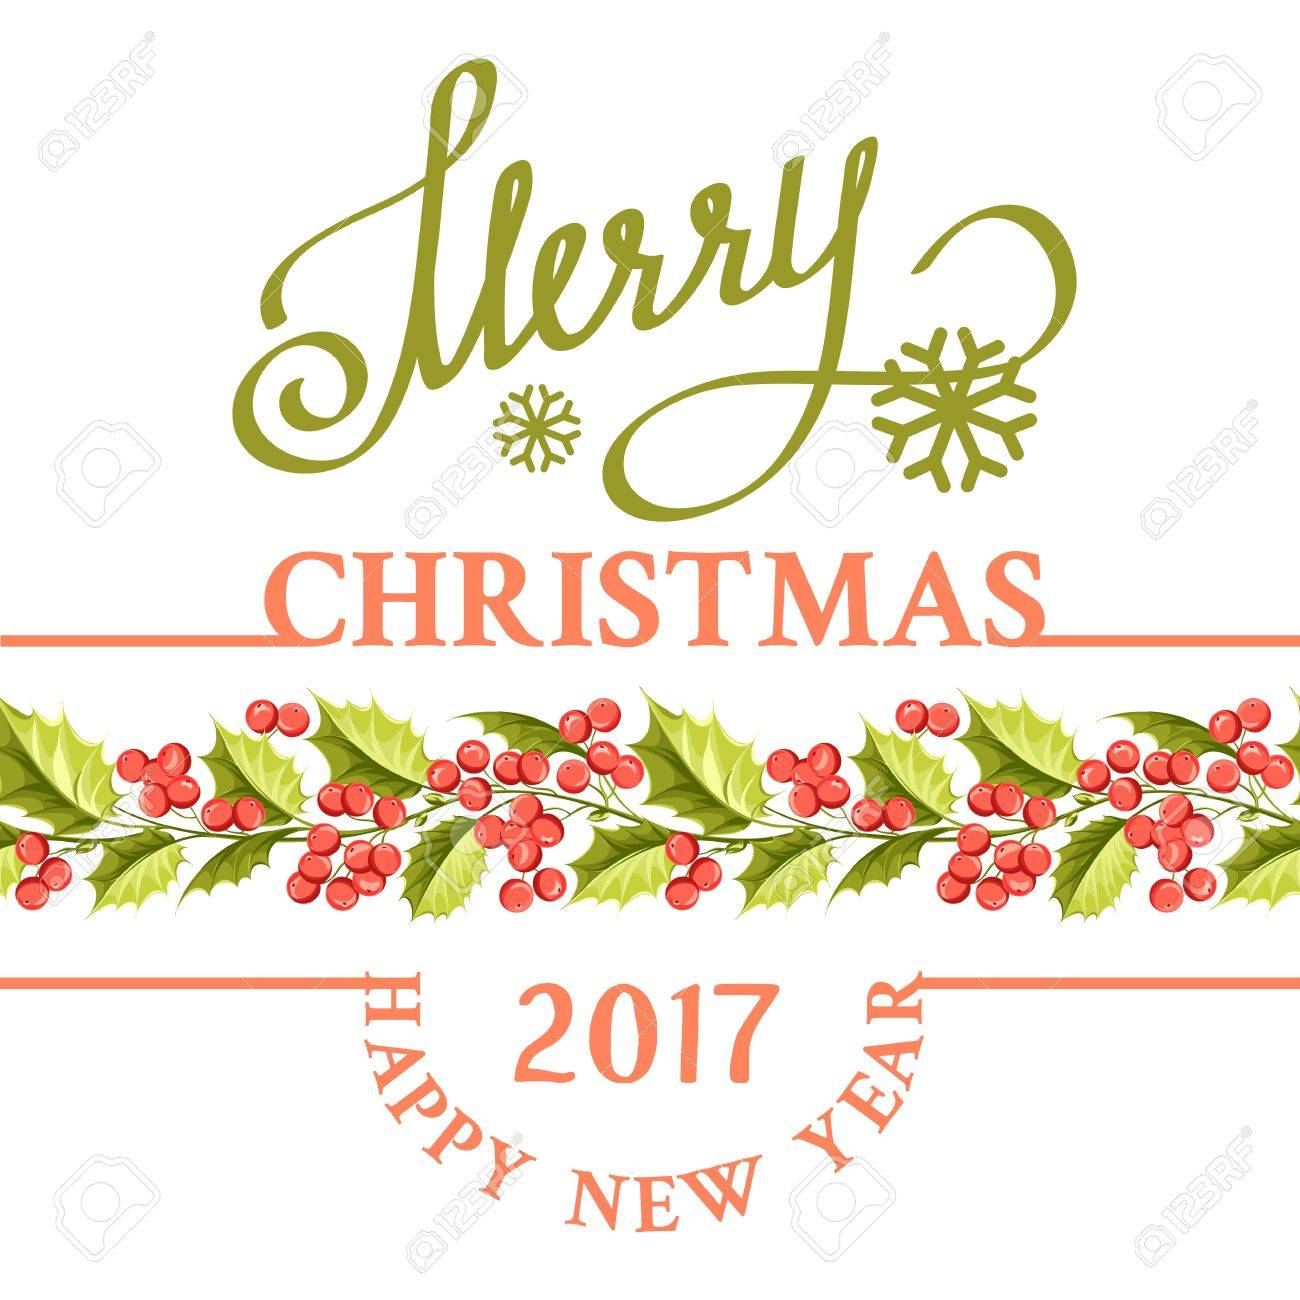 Christmas mistletoe holiday card with text happy new year 2017 christmas mistletoe holiday card with text happy new year 2017 christmas flower frame buycottarizona Image collections